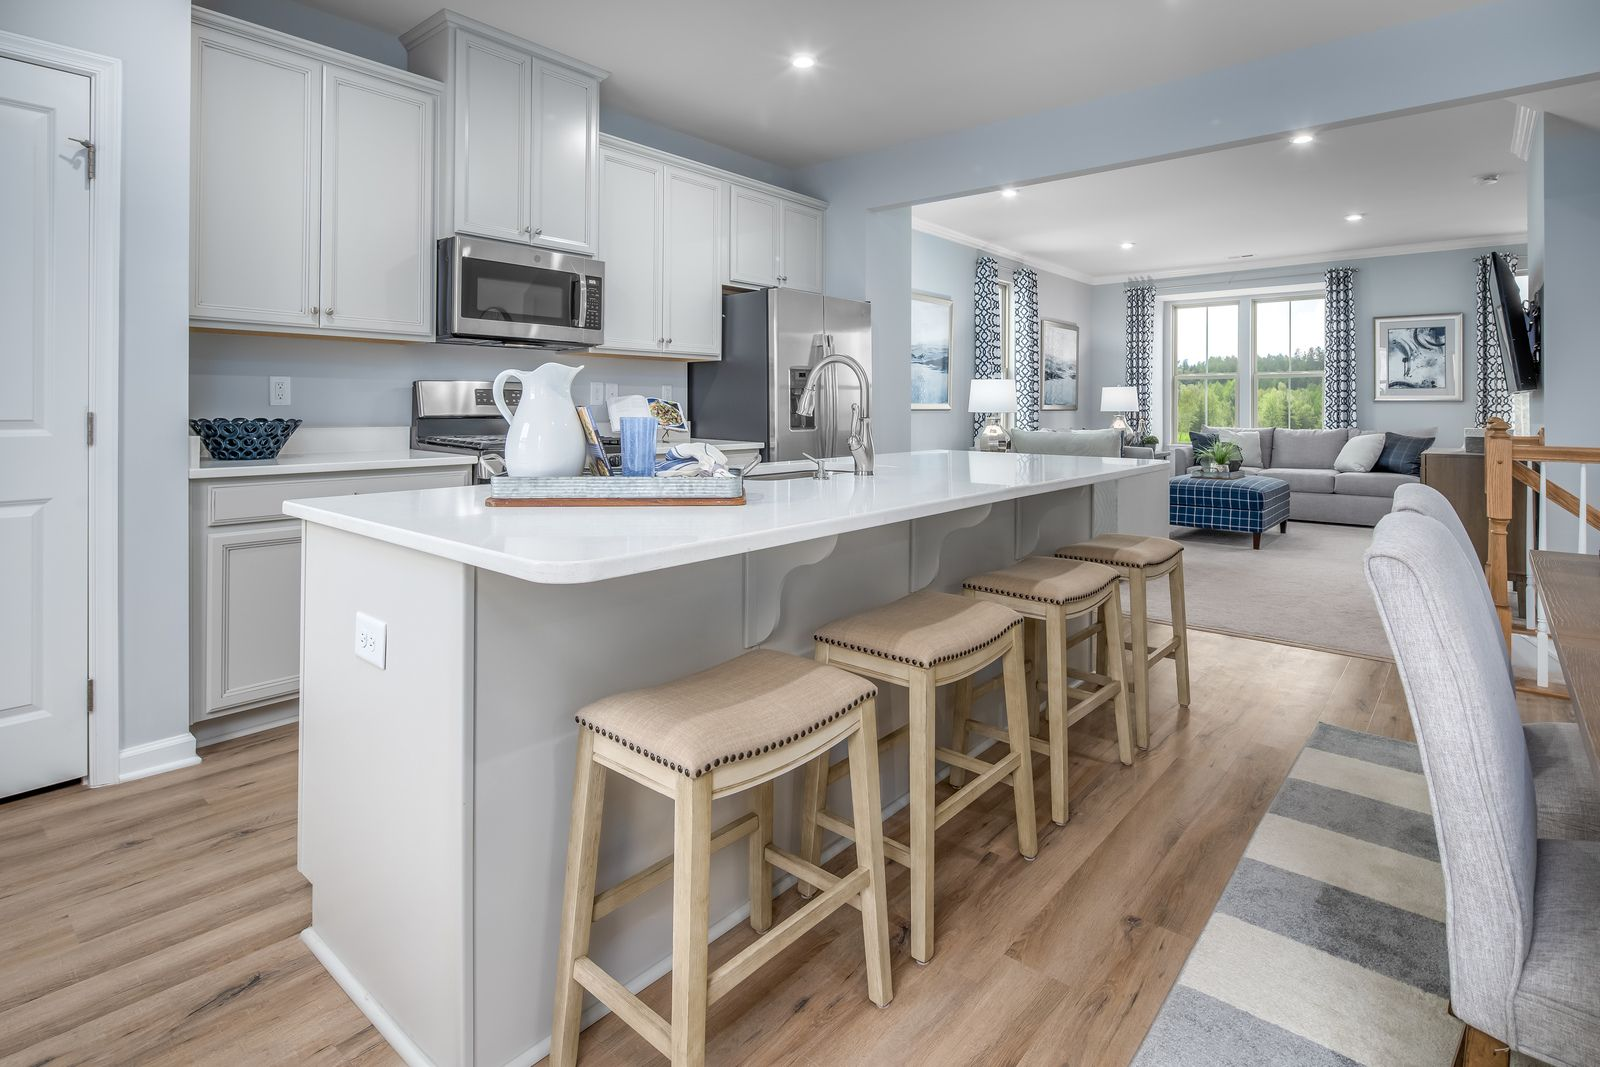 Kitchen featured in the Mozart By Ryan Homes in Charlotte, NC